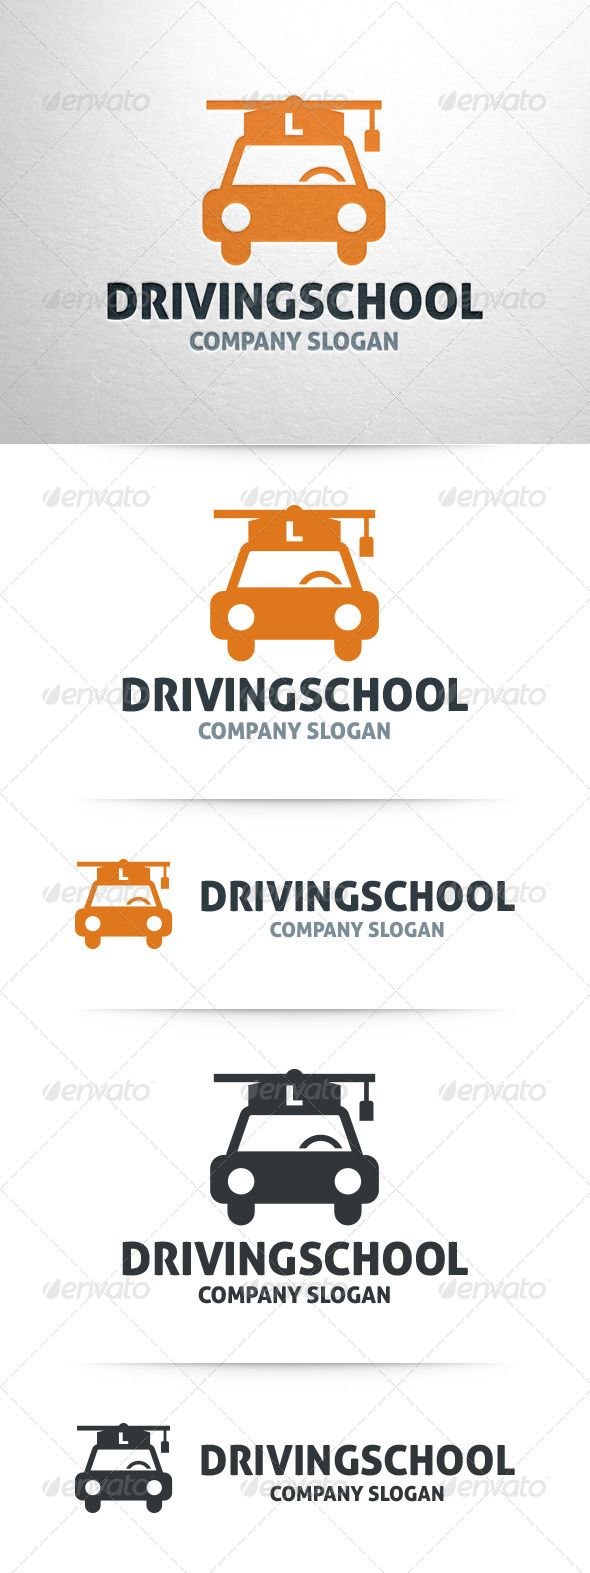 Driving School  - Logo Design Template Vector #logotype Download it here: http://graphicriver.net/item/driving-school-logo-template/7973001?s_rank=826?ref=nesto